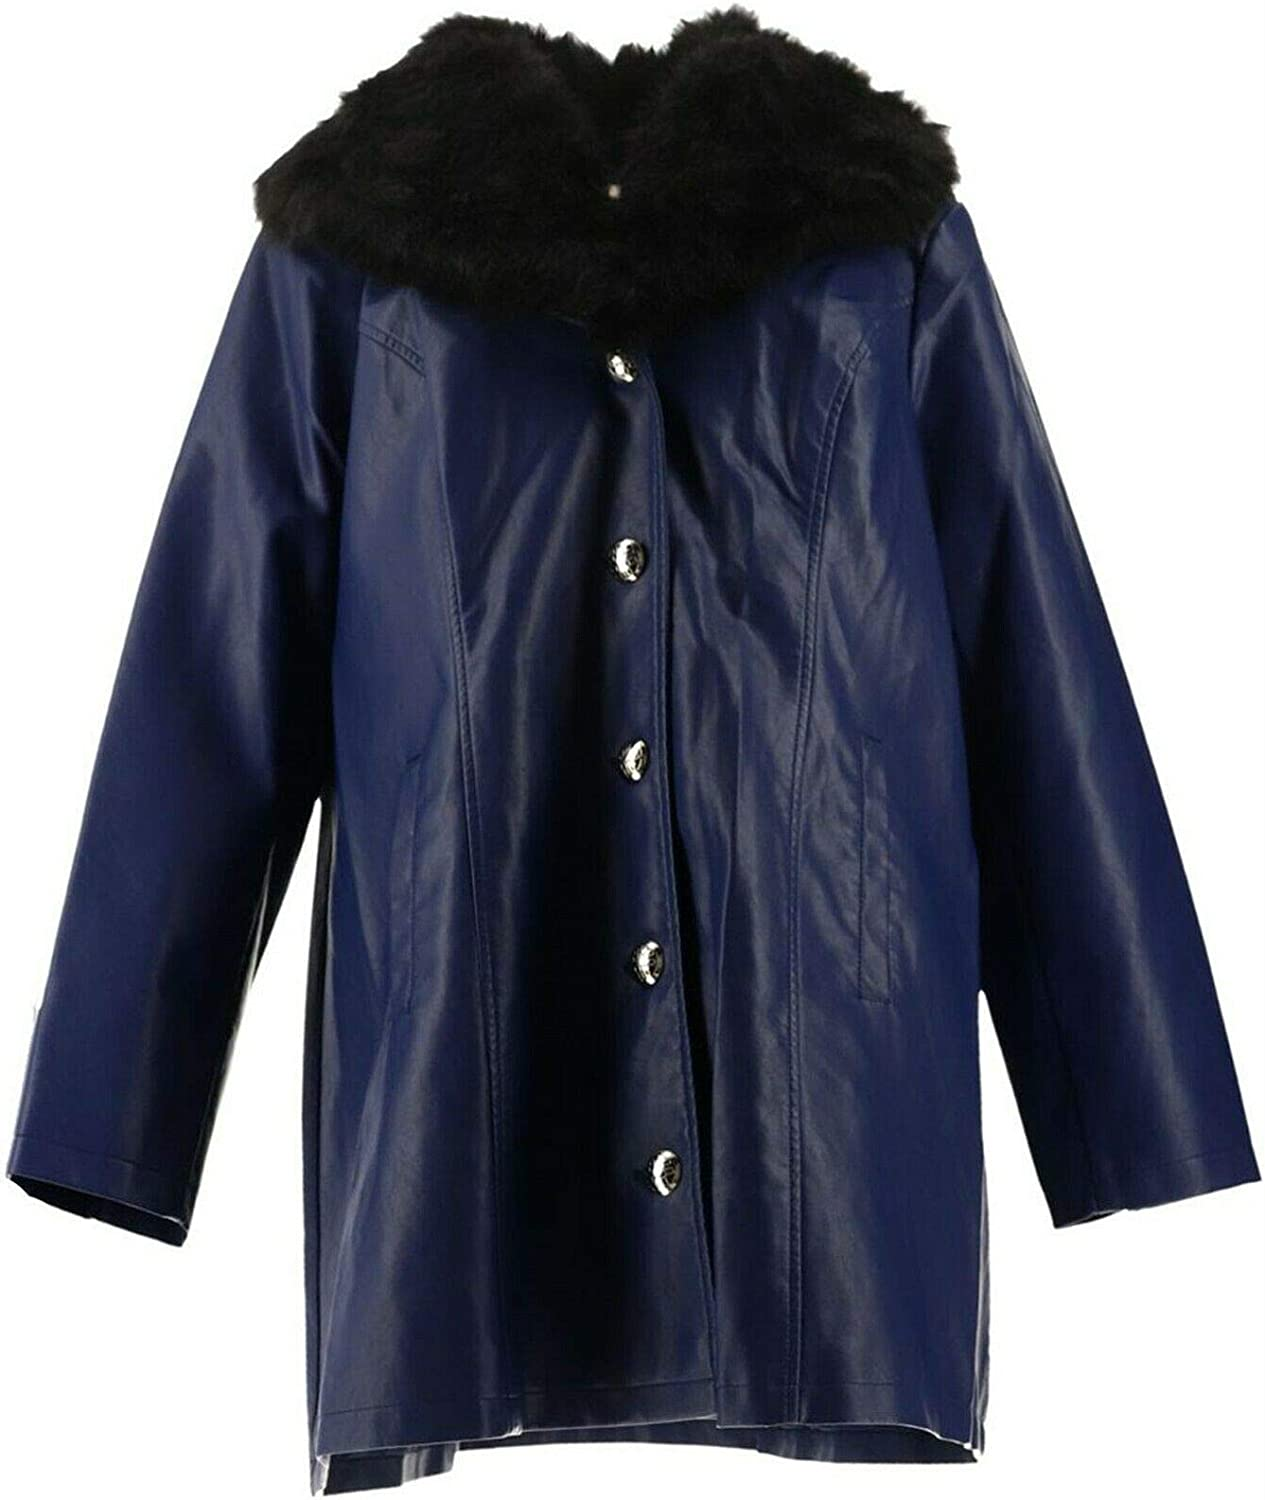 Dennis Basso Faux Leather Jacket Collar Fur Max 43% OFF Industry No. 1 A2946 Removable